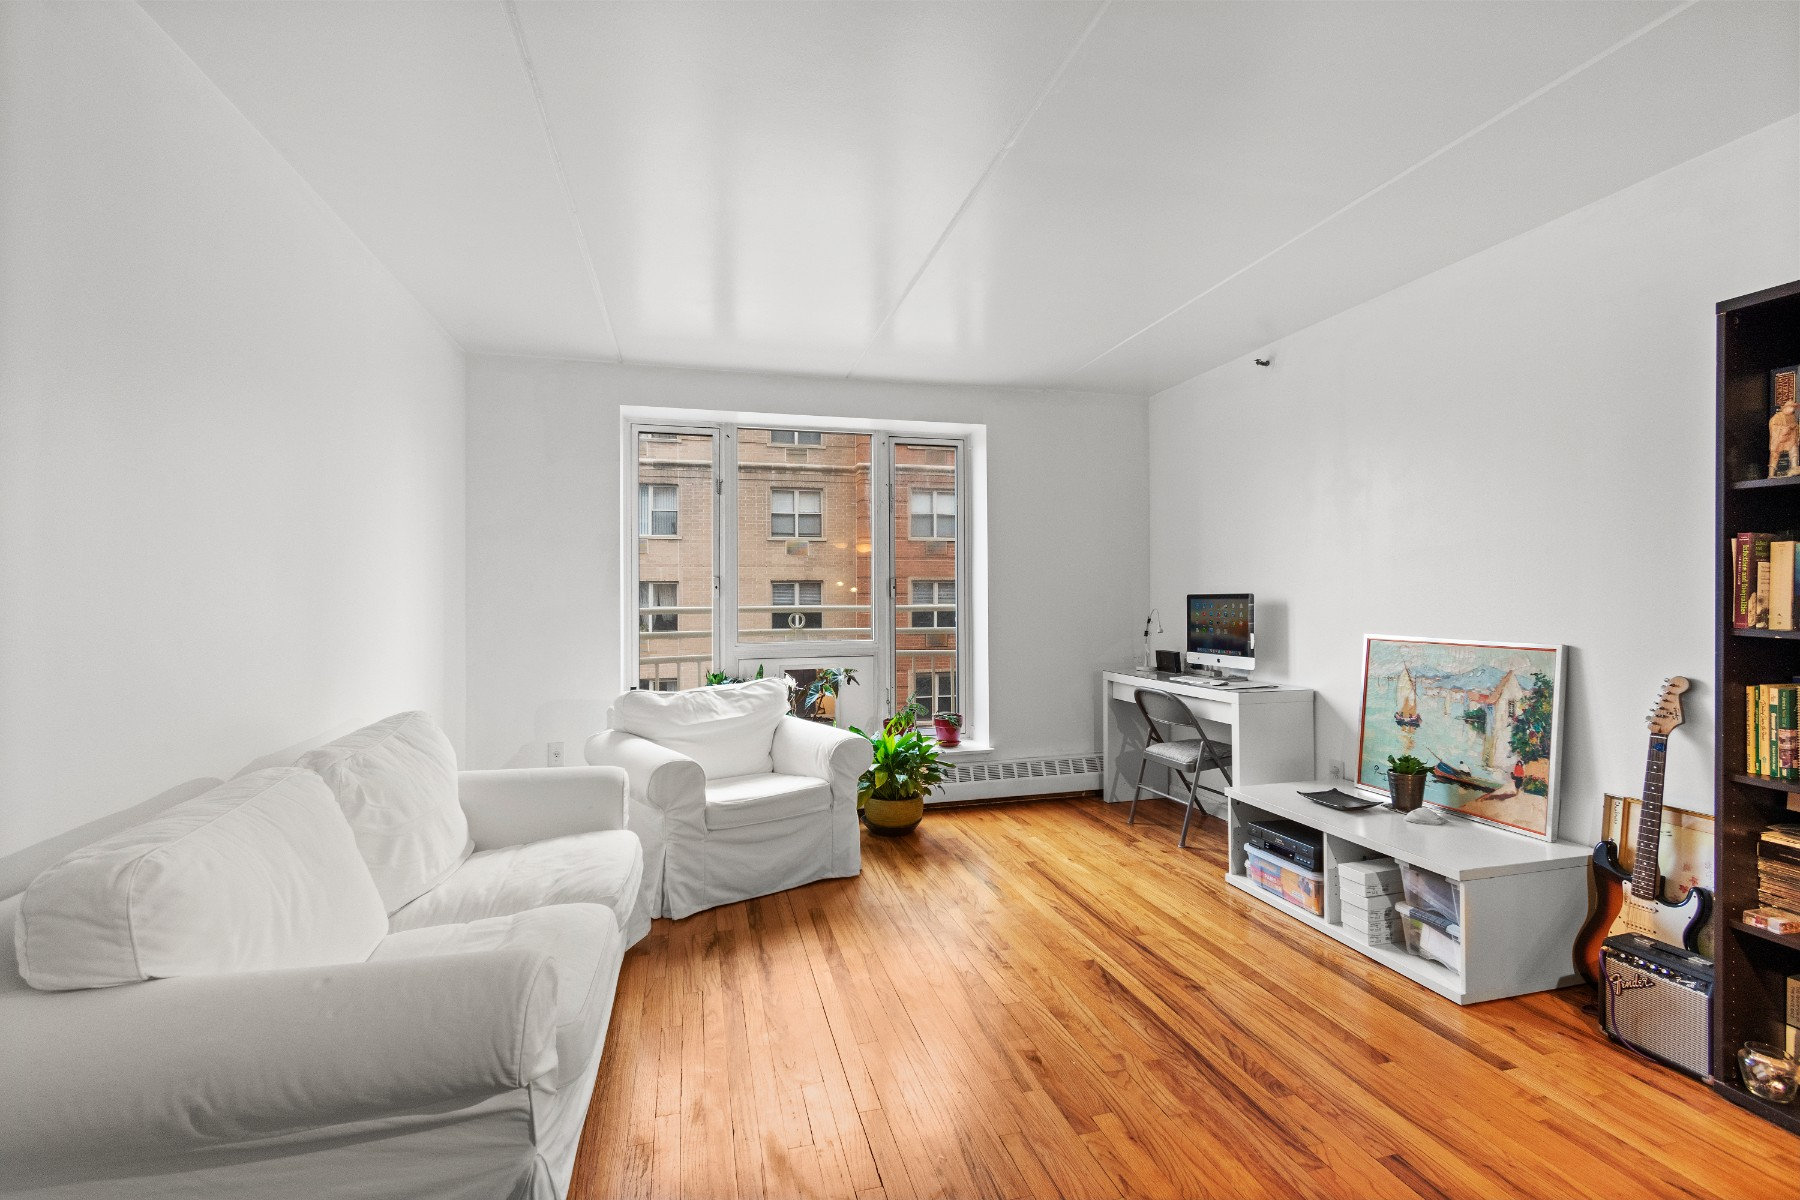 This beautiful corner unit is a two-bedroom, 2 bath apartment that offers incredible light throughout, Southern and Eastern exposure in the heart of Harlem. This apartment enjoys a spacious living room/dining area open for entertaining guests and a Juliet door windows. The partially open kitchen has been renovated and it offers stainless steel appliances. The master bedroom has an en-suite bathroom and a large walk-in closet. The apartment also features solid oak hardwood floors throughout.BUILDING: This pet-friendly building was built in 2004. The Madison Plaza offers the convenience of a full-time doorman, live-in super, central laundry, fitness room, bike storage, and a planted courtyard with BBQ grill for shareholders.Location: Located a few blocks away from Central Park and two blocks from Marcus Garvey Park, this area offers plenty of shopping, entertainment, and different methods of transportation such as Metro North, M60 La Guardia, and subway train access.This is an income-restricted building. The maximum household income allowed for this unit is $284,250.